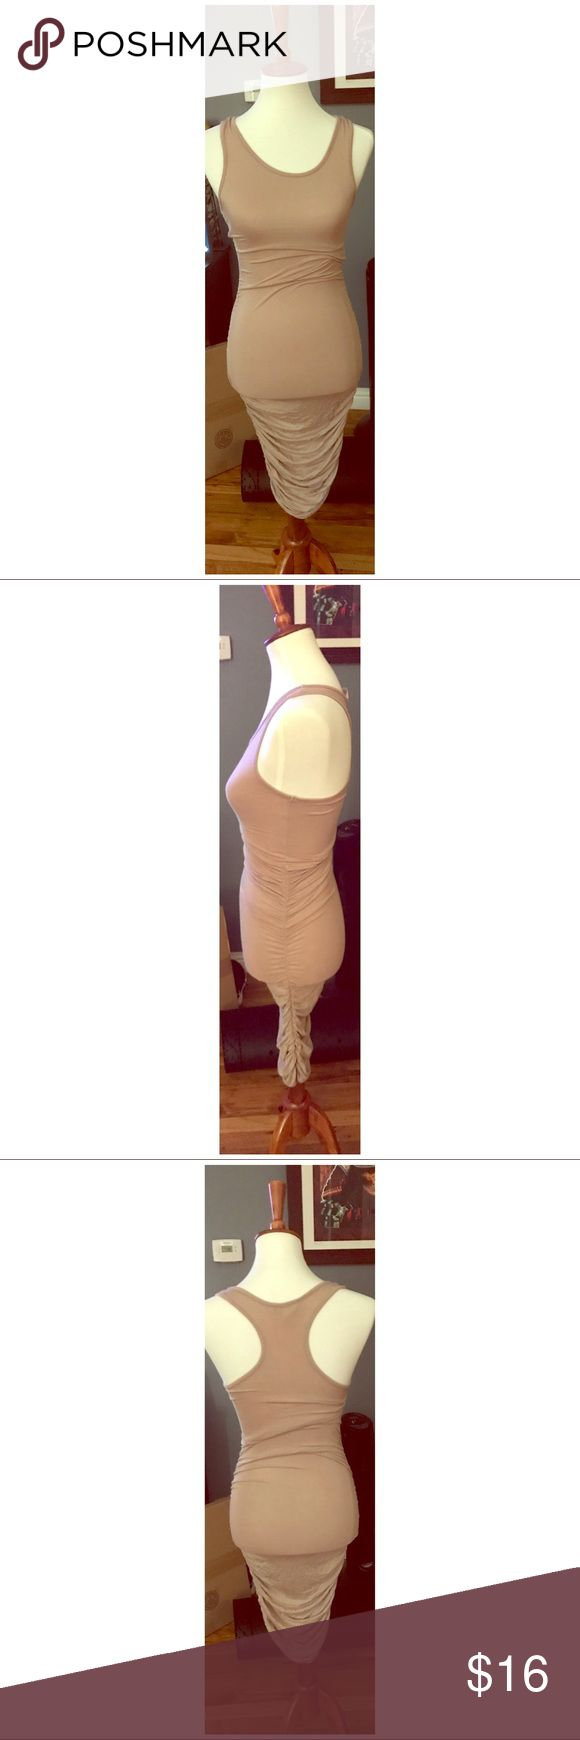 Nude Camel Bodycon Midi Tank Dress This dress has ruched sides and is a midi length. It has a tank top style upper. Size small. Fashion Nova Dresses Midi